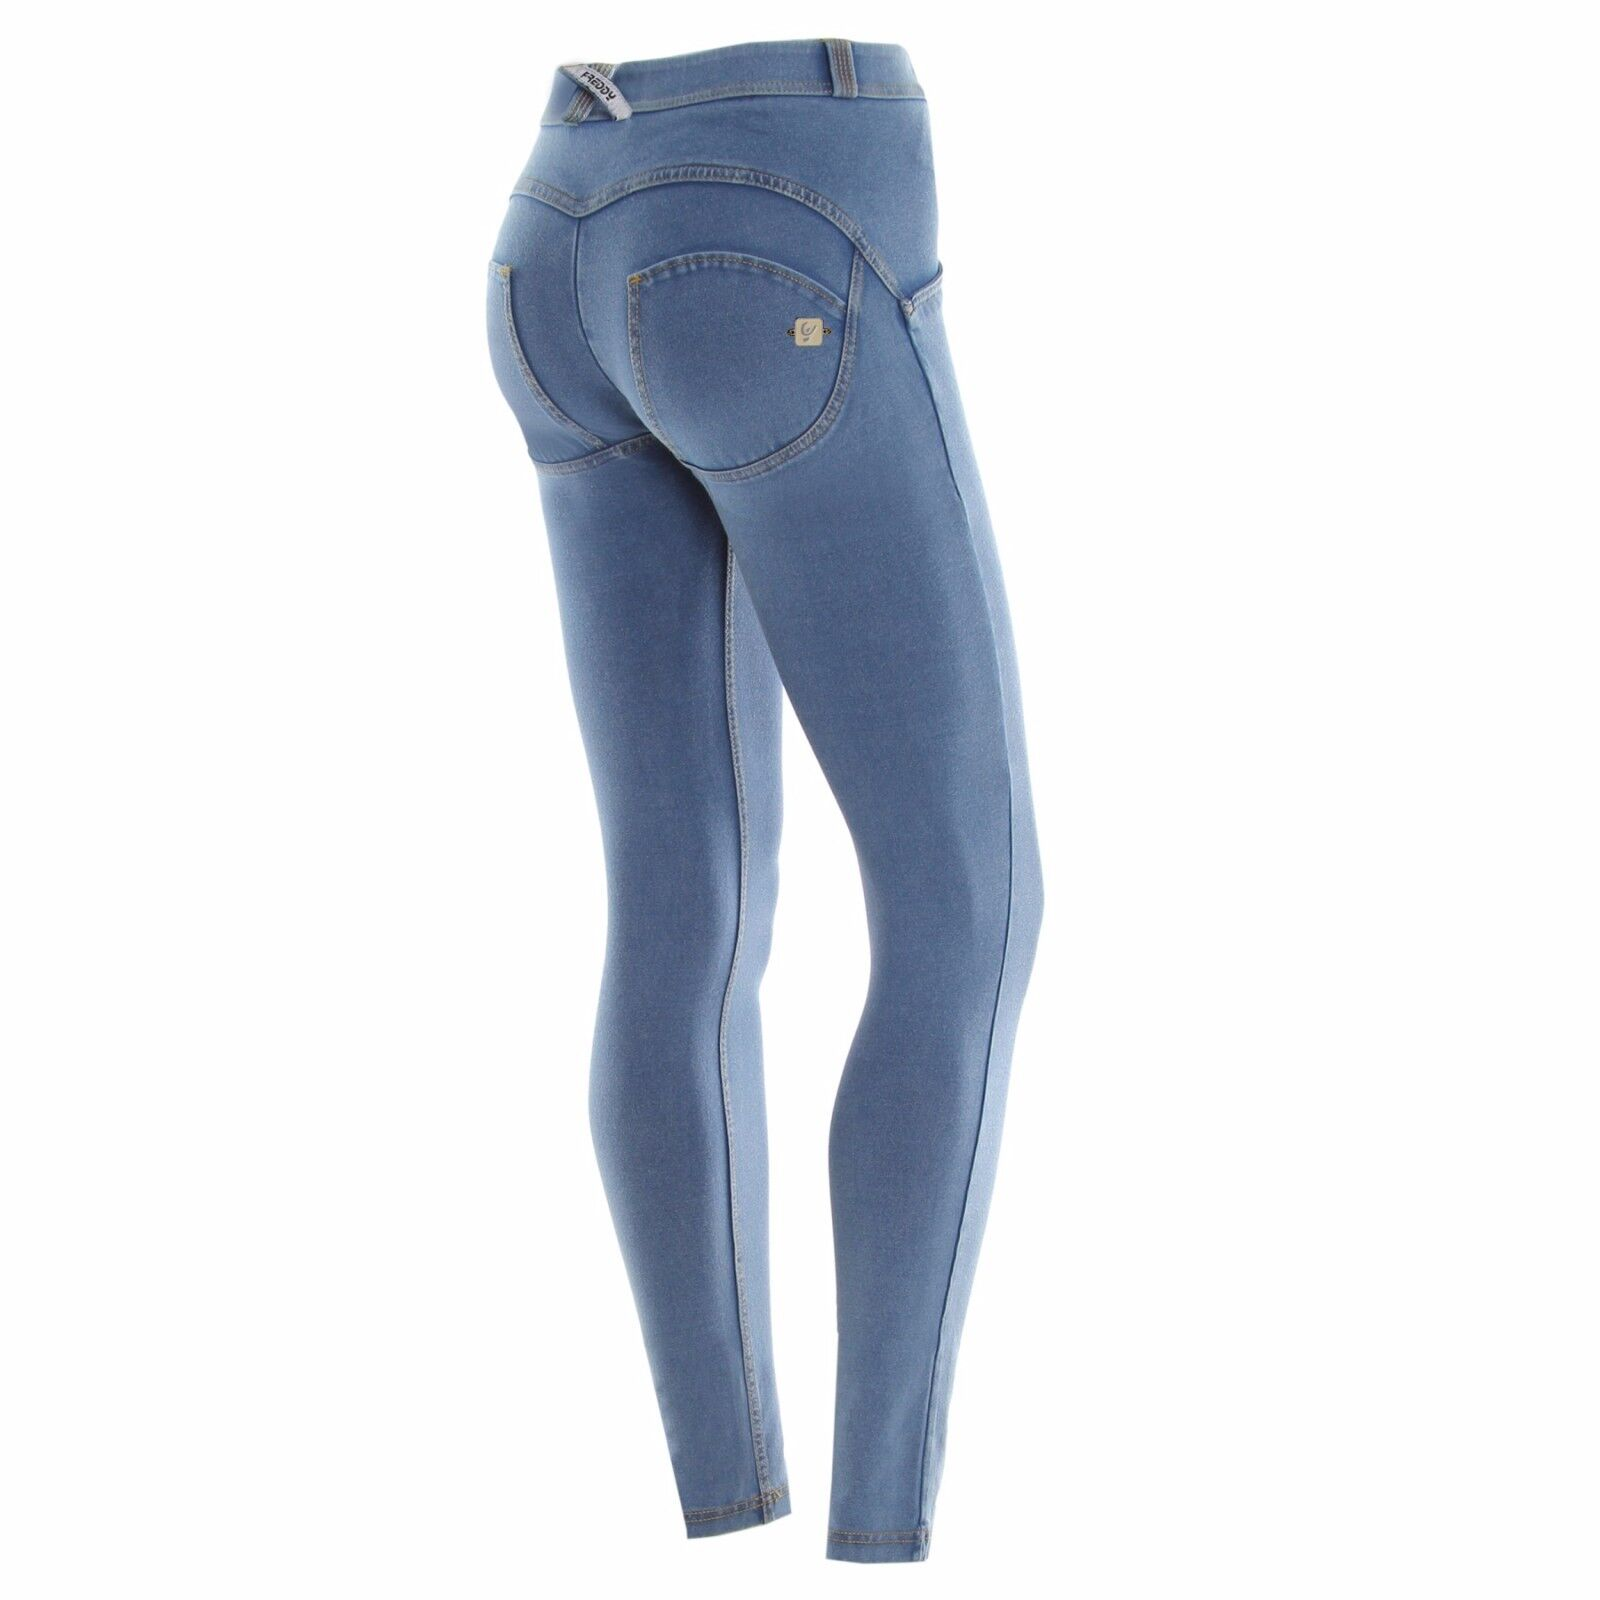 FREDDY WR.UP JEANS CHIARO + BODY OMAGGIO S M L PANTALONI PUSH UP WRUP1PRA01E